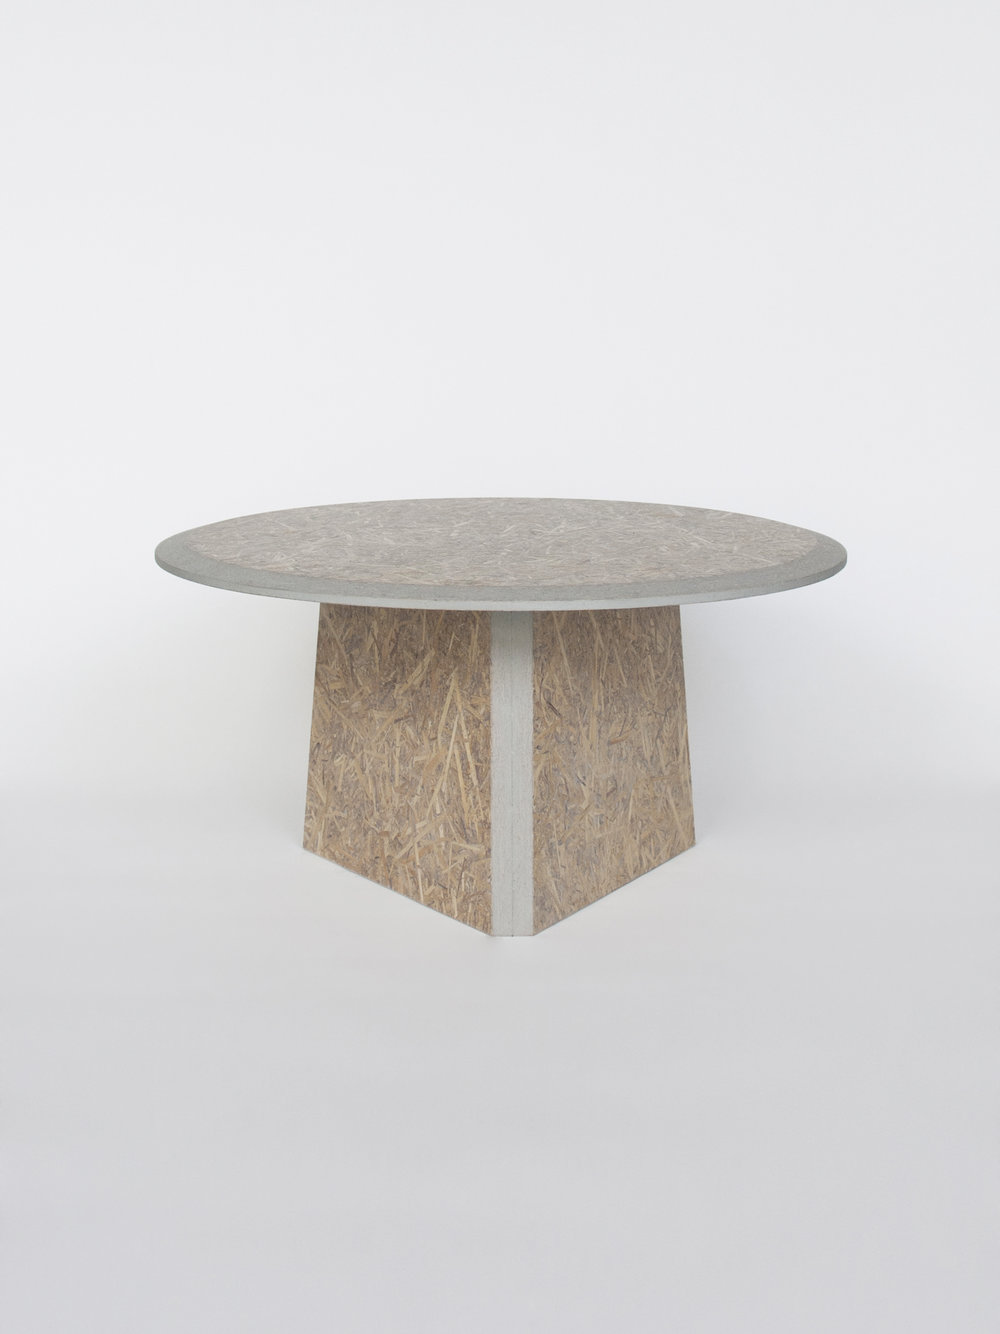 Straw sidetables -gray_front view- David Derksen Design.jpg